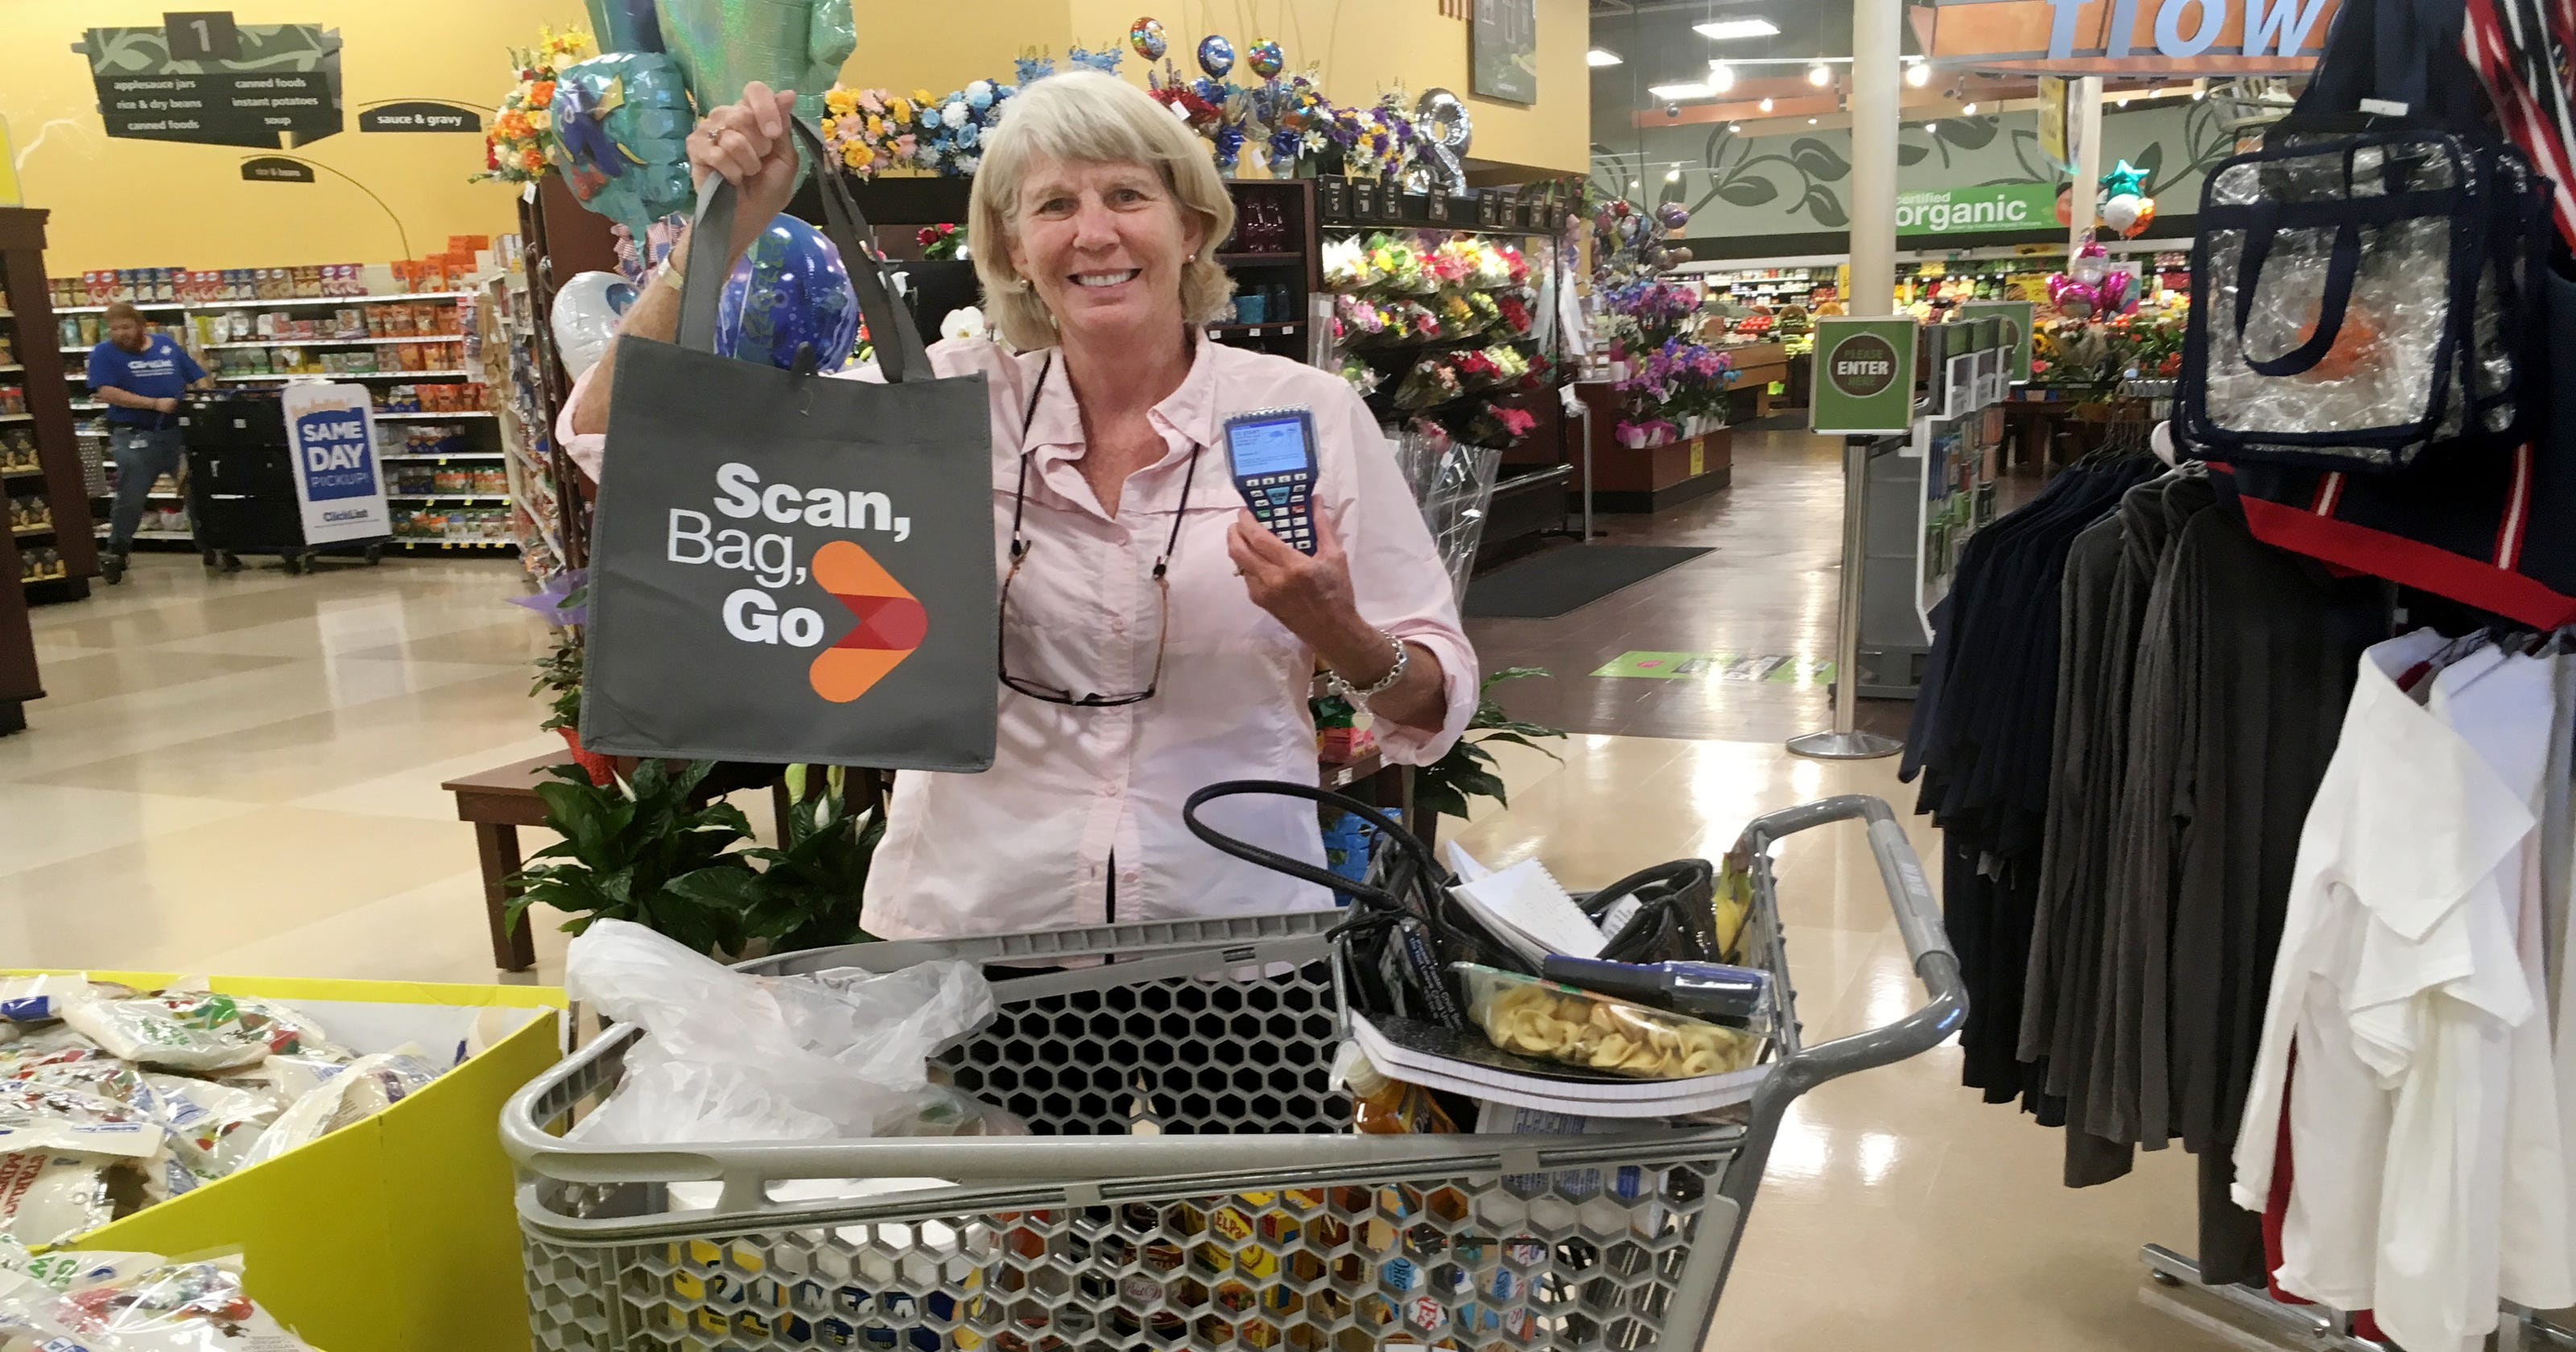 Kroger's Scan, Bag, Go checkout is an adventure in grocery shopping